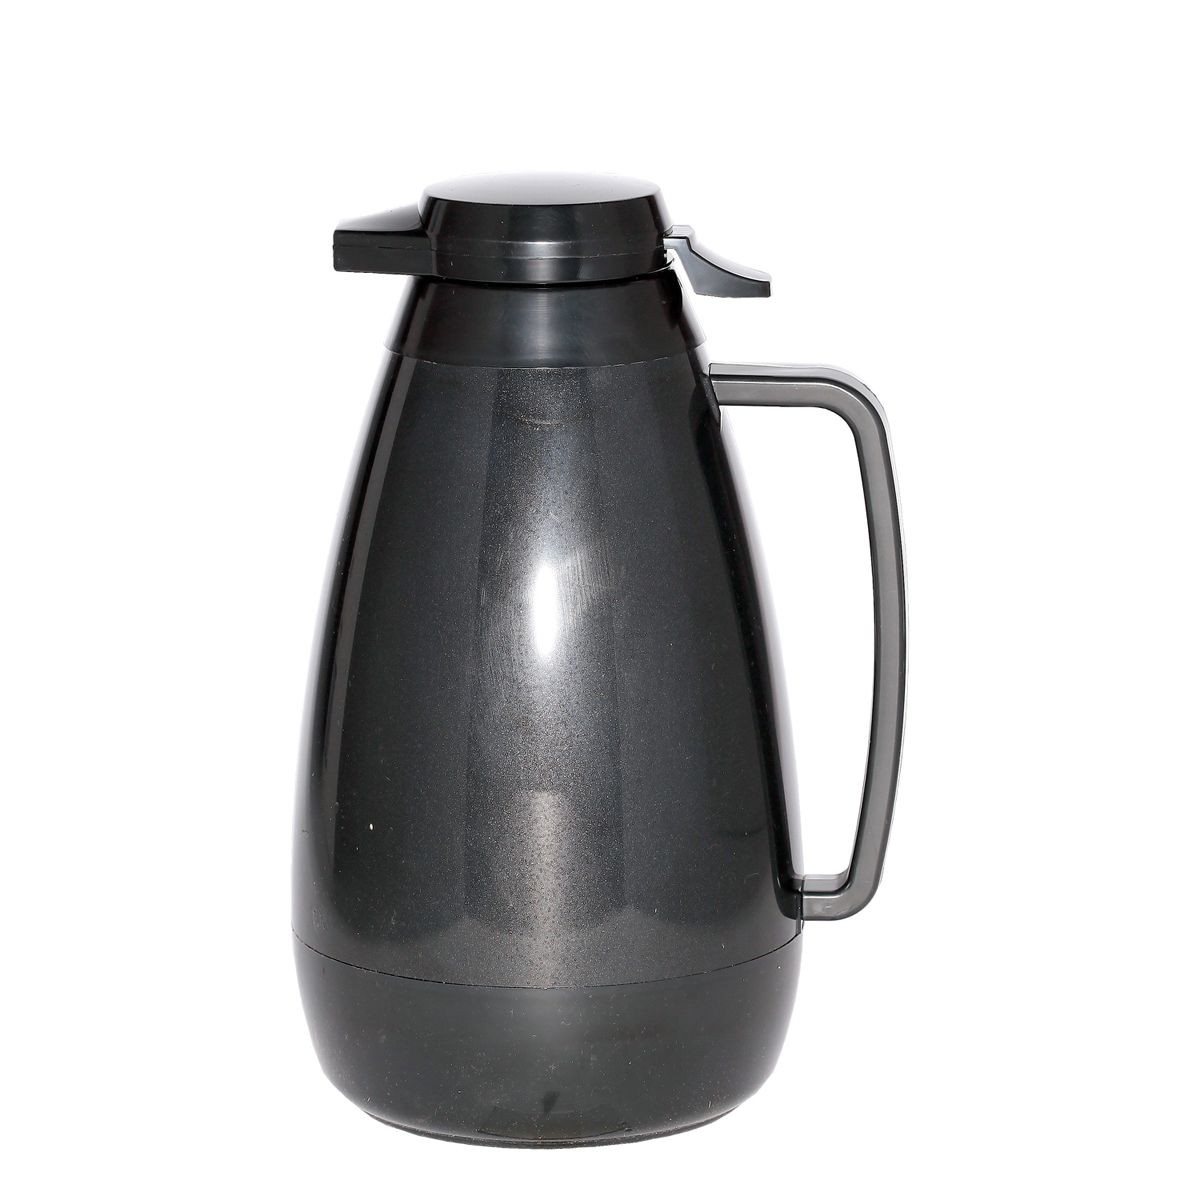 Service Ideas PB421BL Thermo-Serv Black Push Button Coffee Server, 2 Liter (68 oz.)